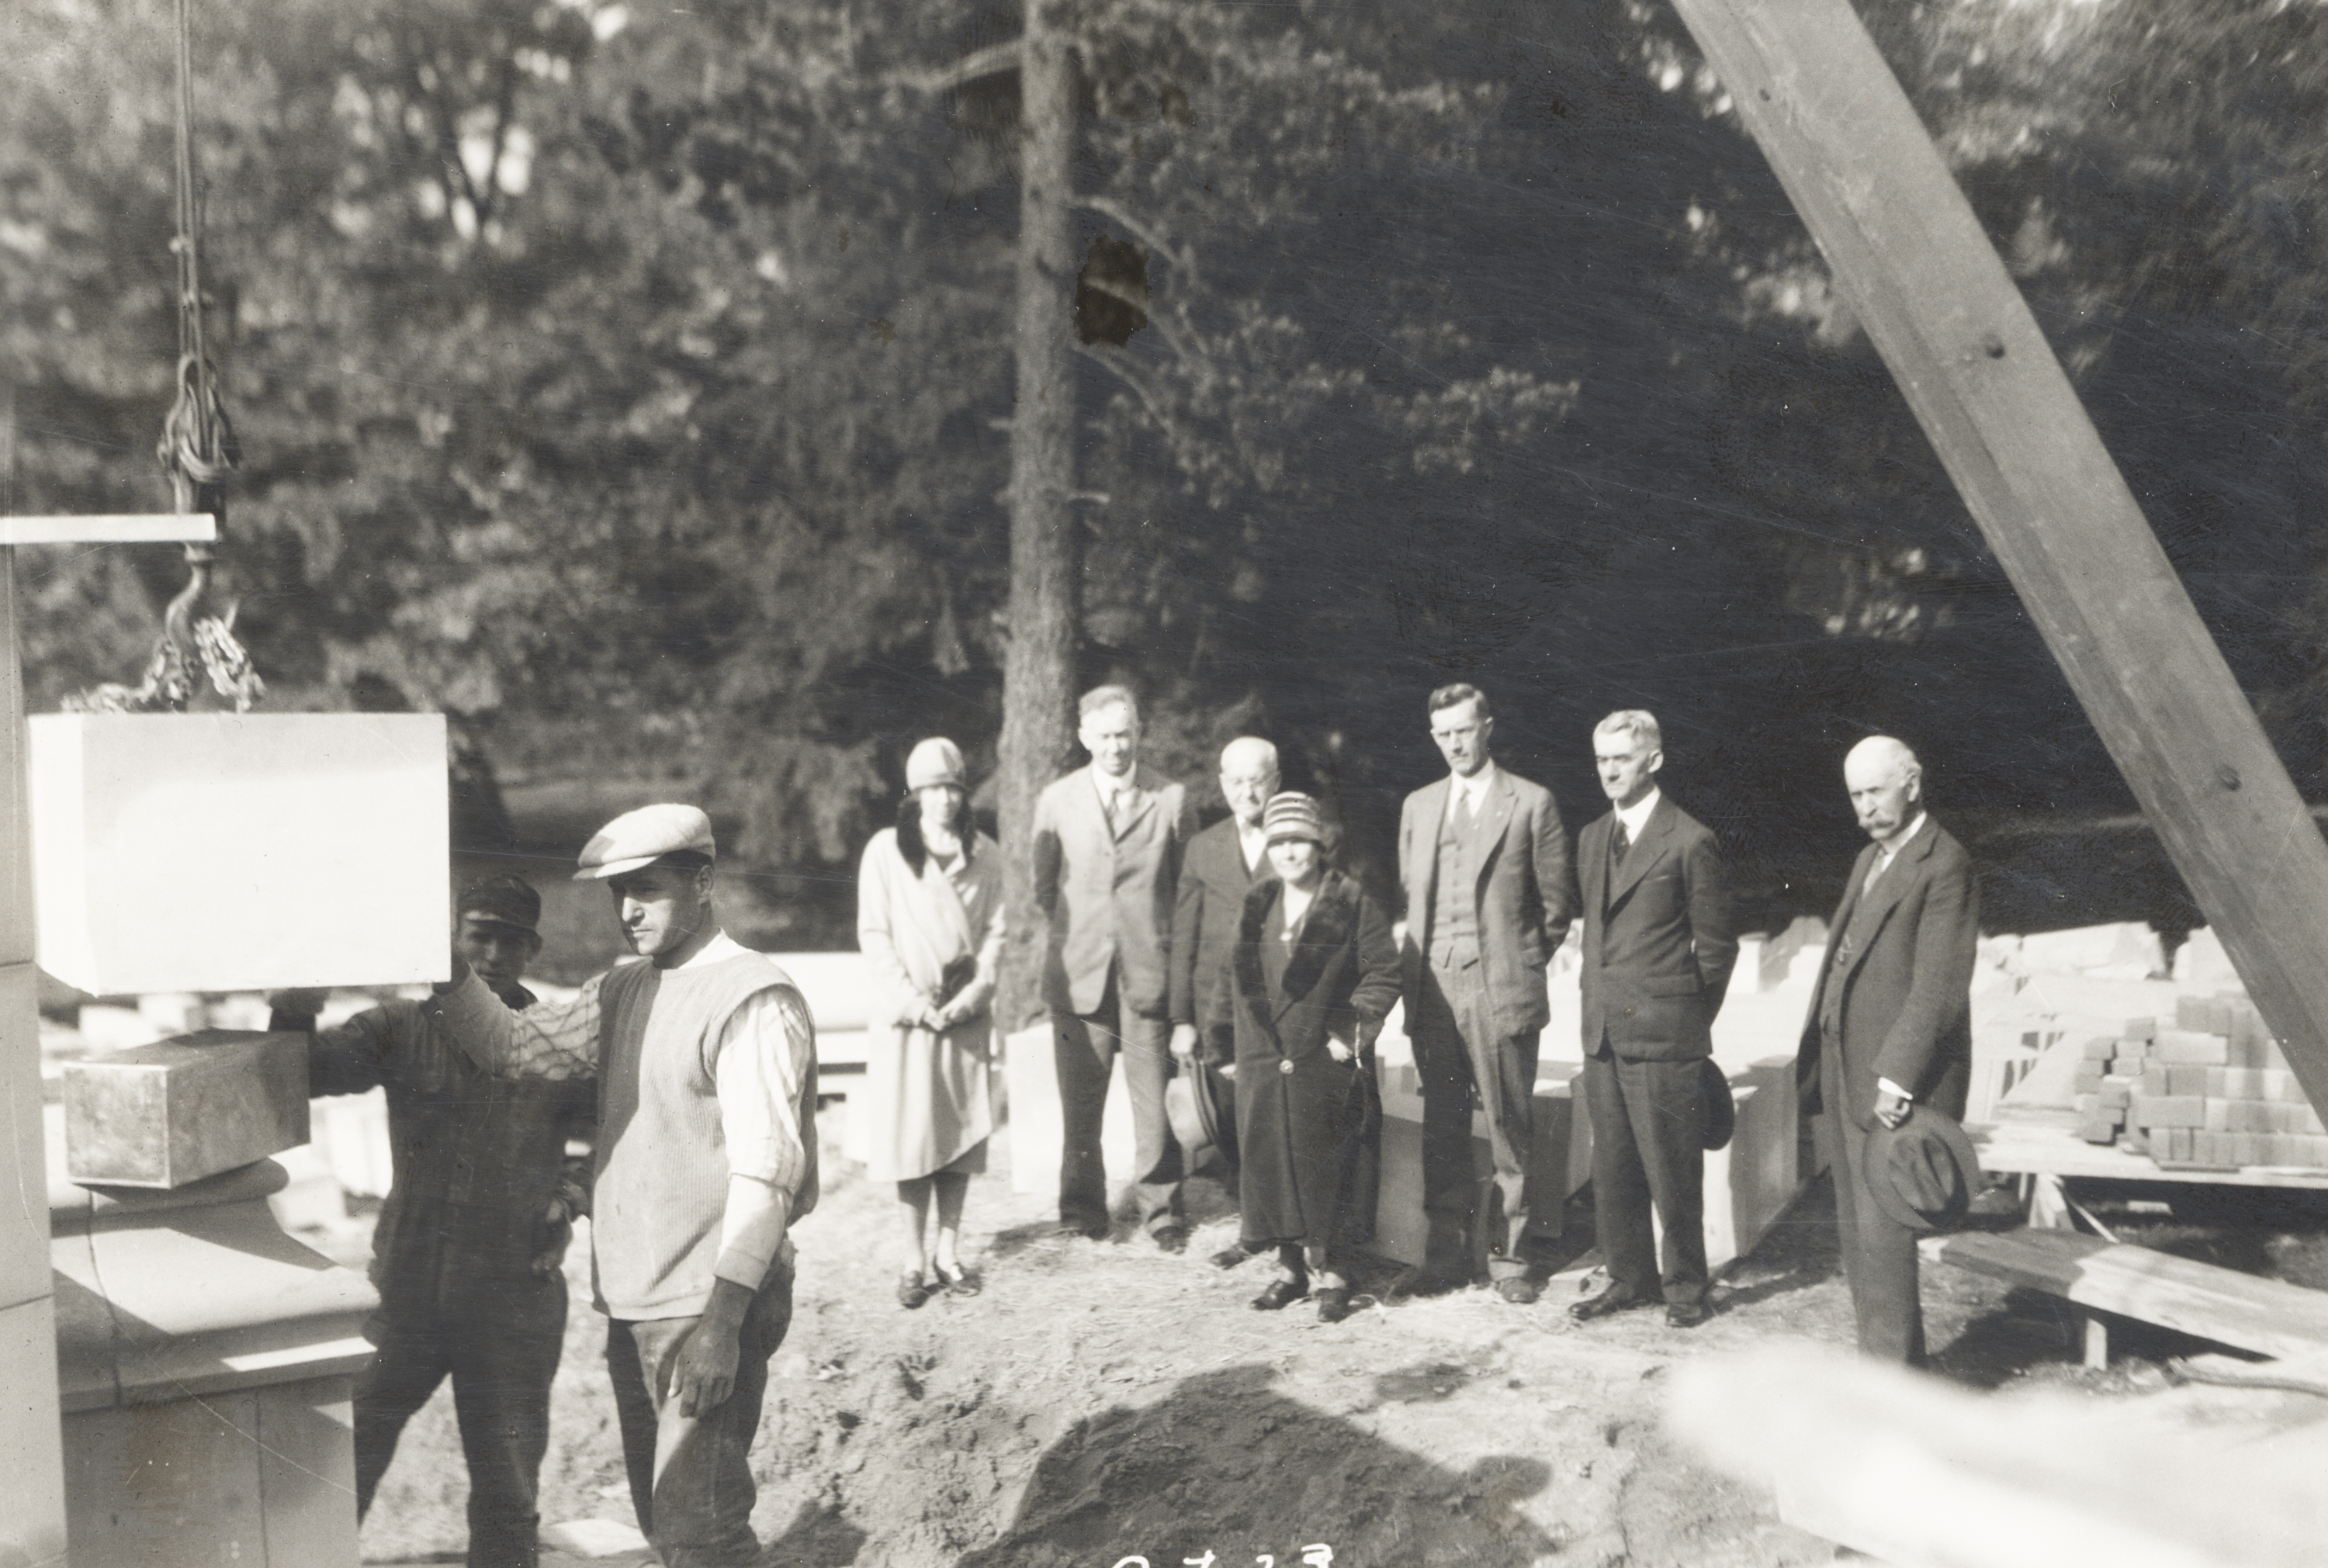 Laying the cornerstone of Beaumont Tower, 1928